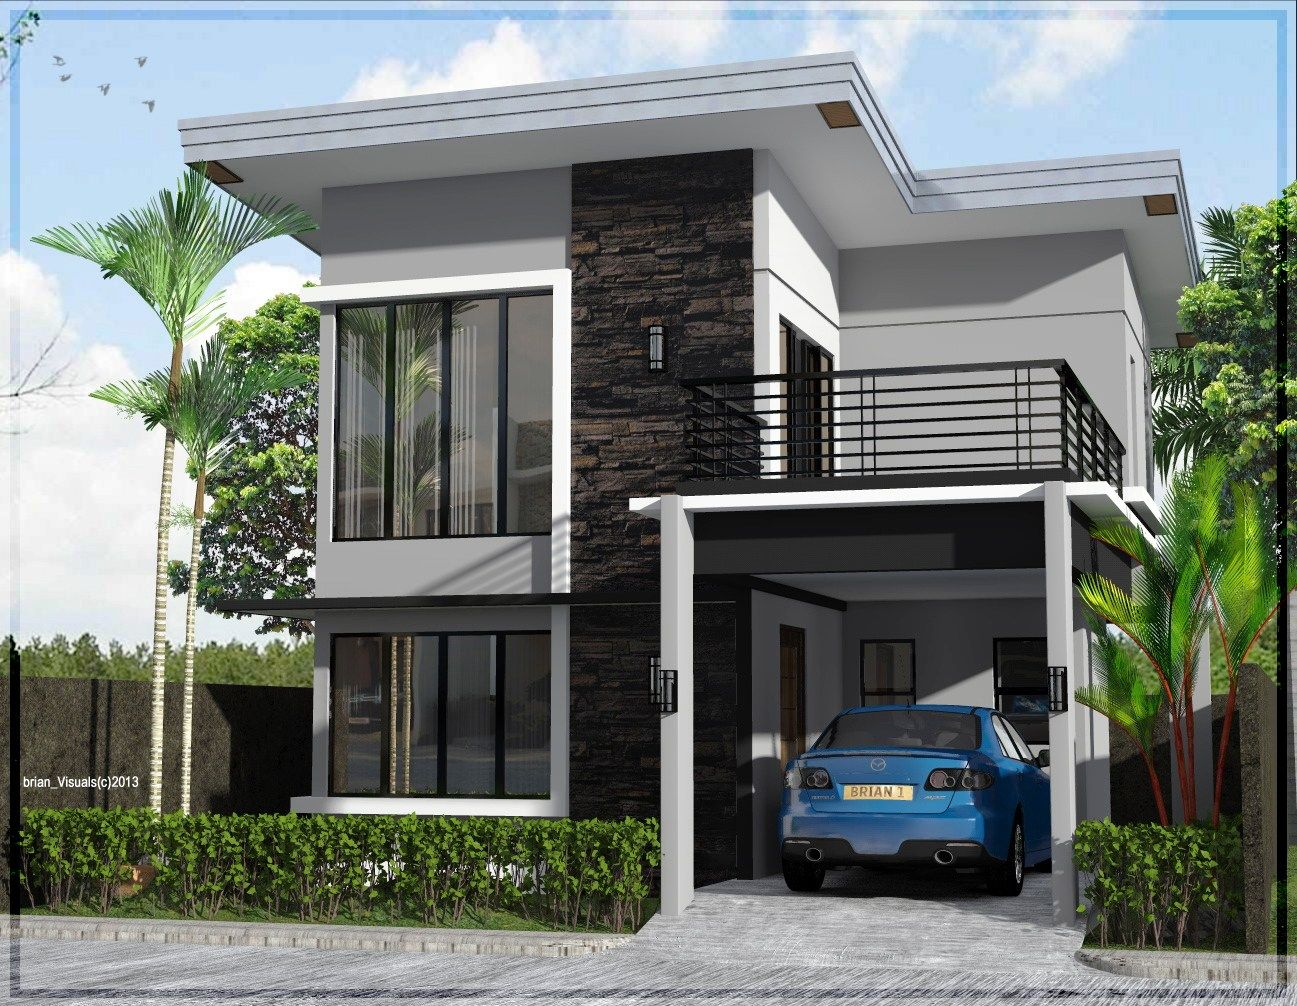 2 Story With Roof Deck